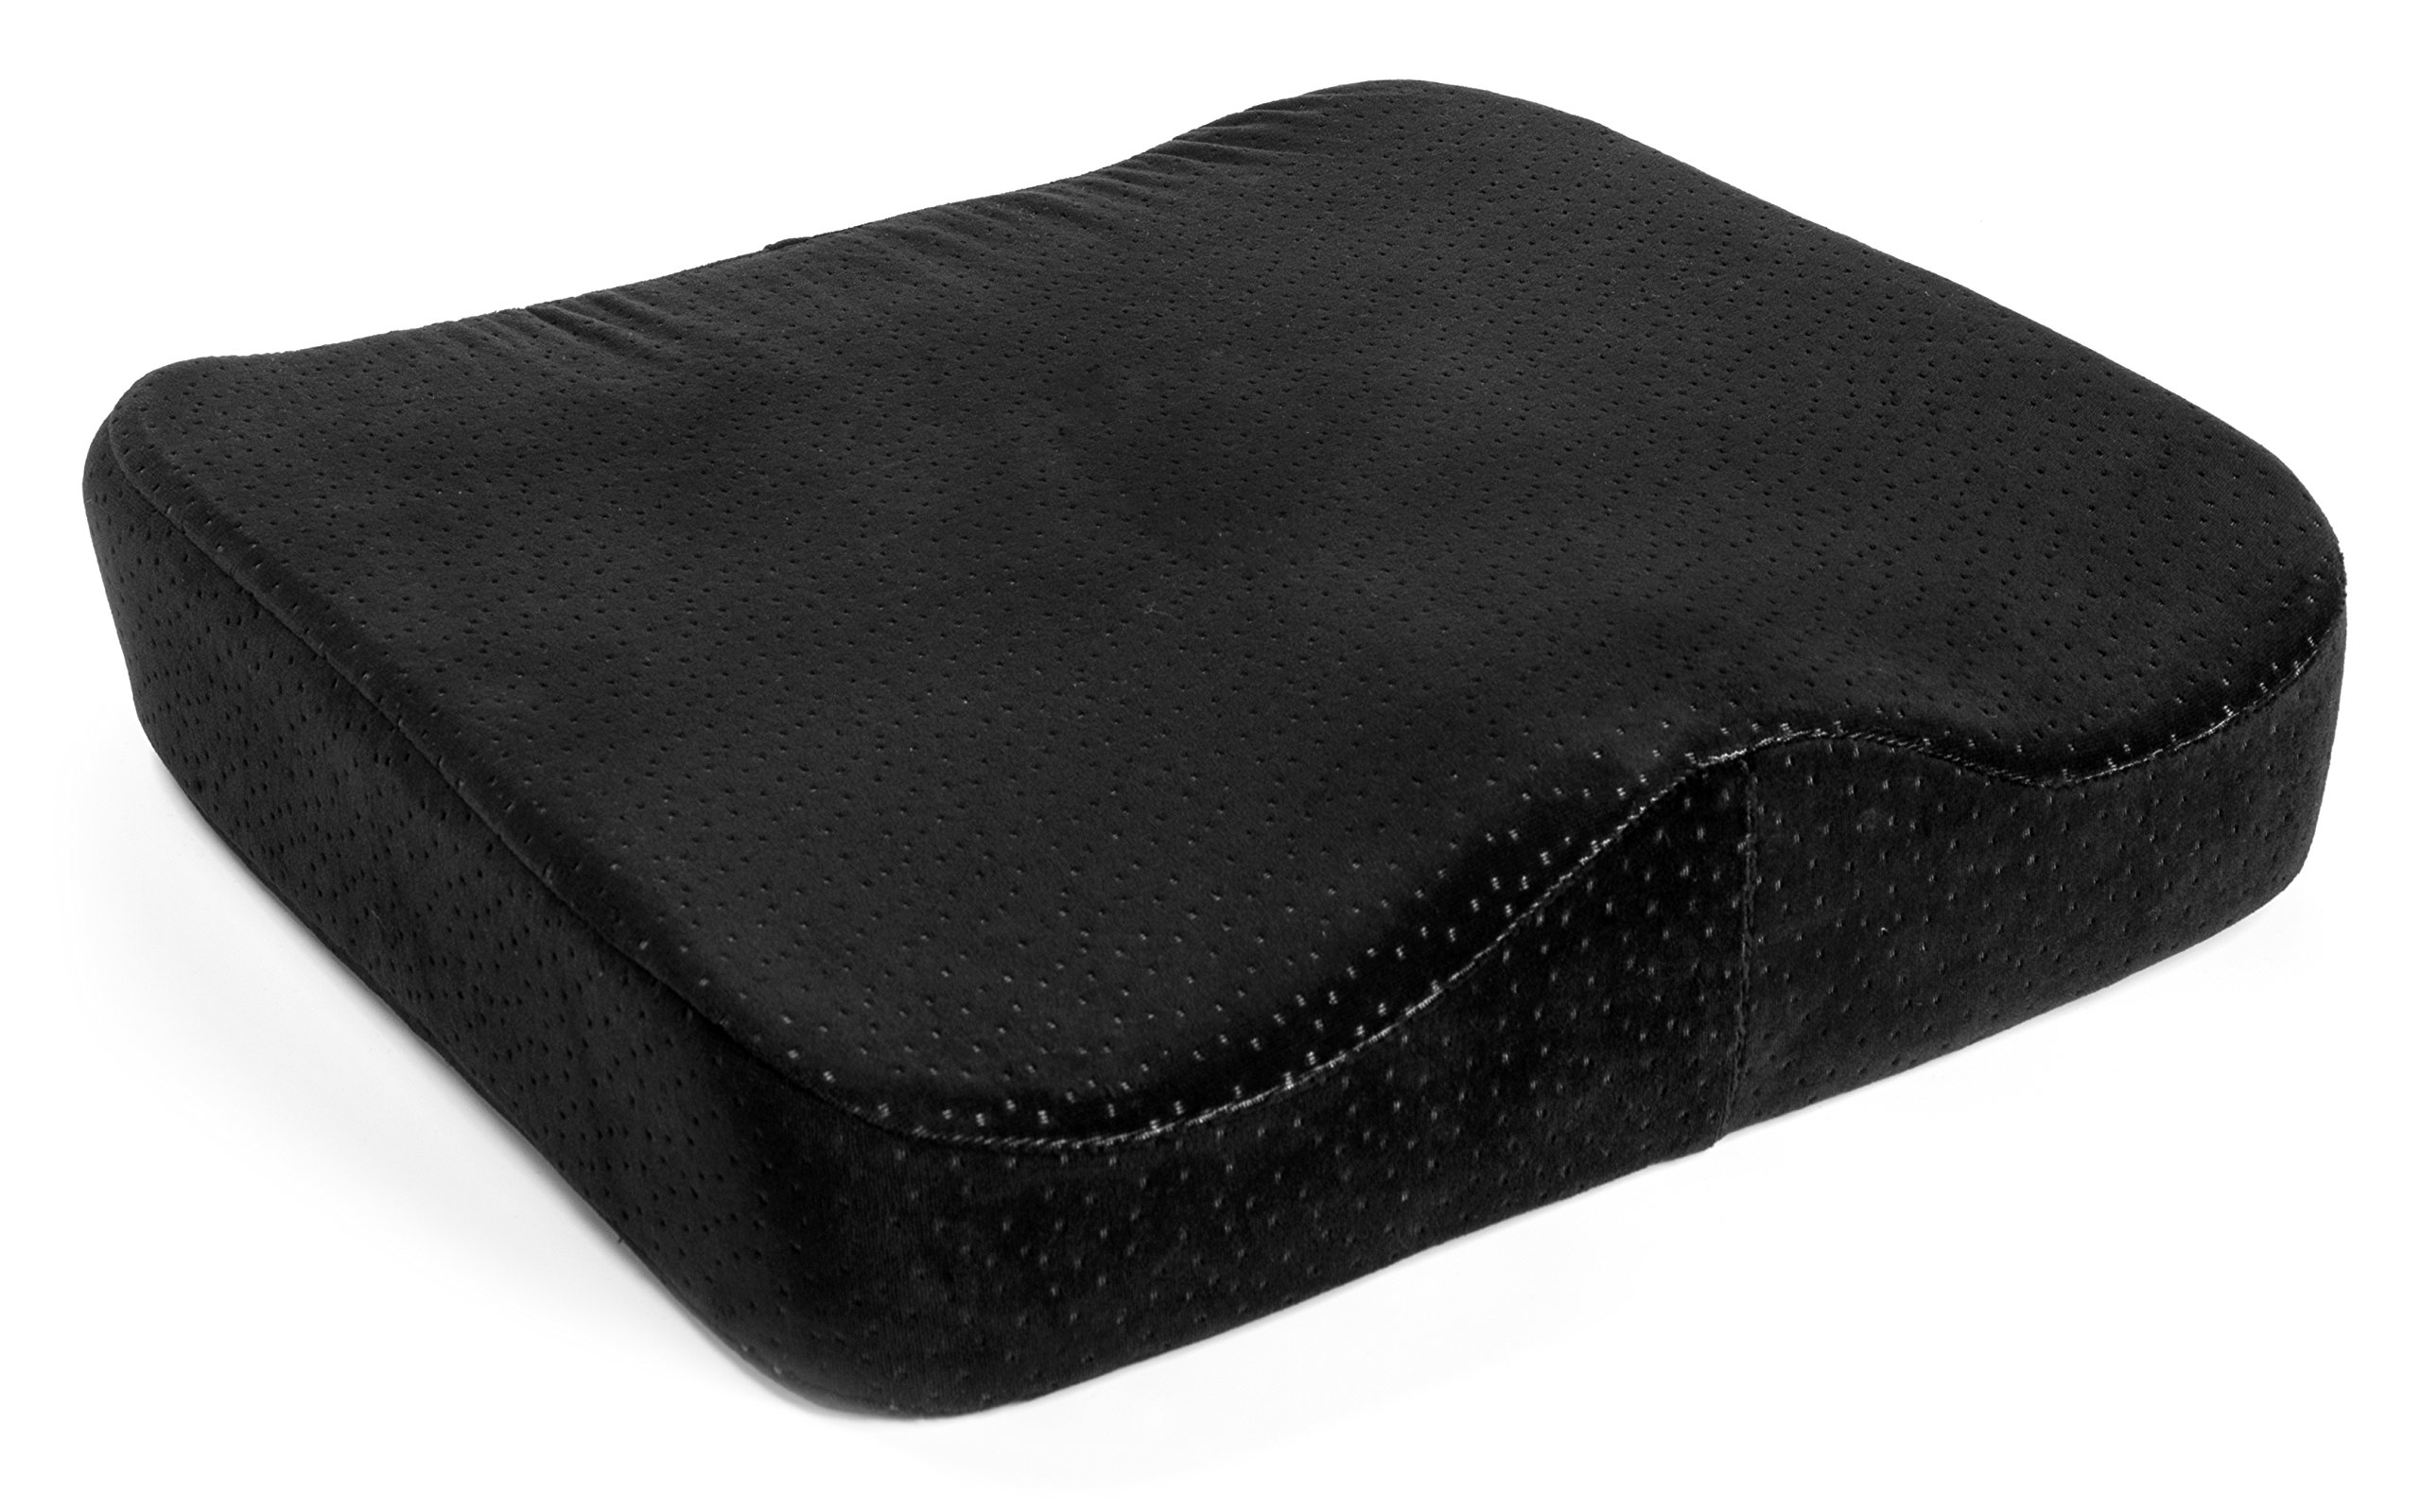 AERIS Memory Foam Seat Cushion Premium Large Office Chair Pad with a Buckle to Prevent Sliding-Car Machine Washable Black Plush Velour Cover